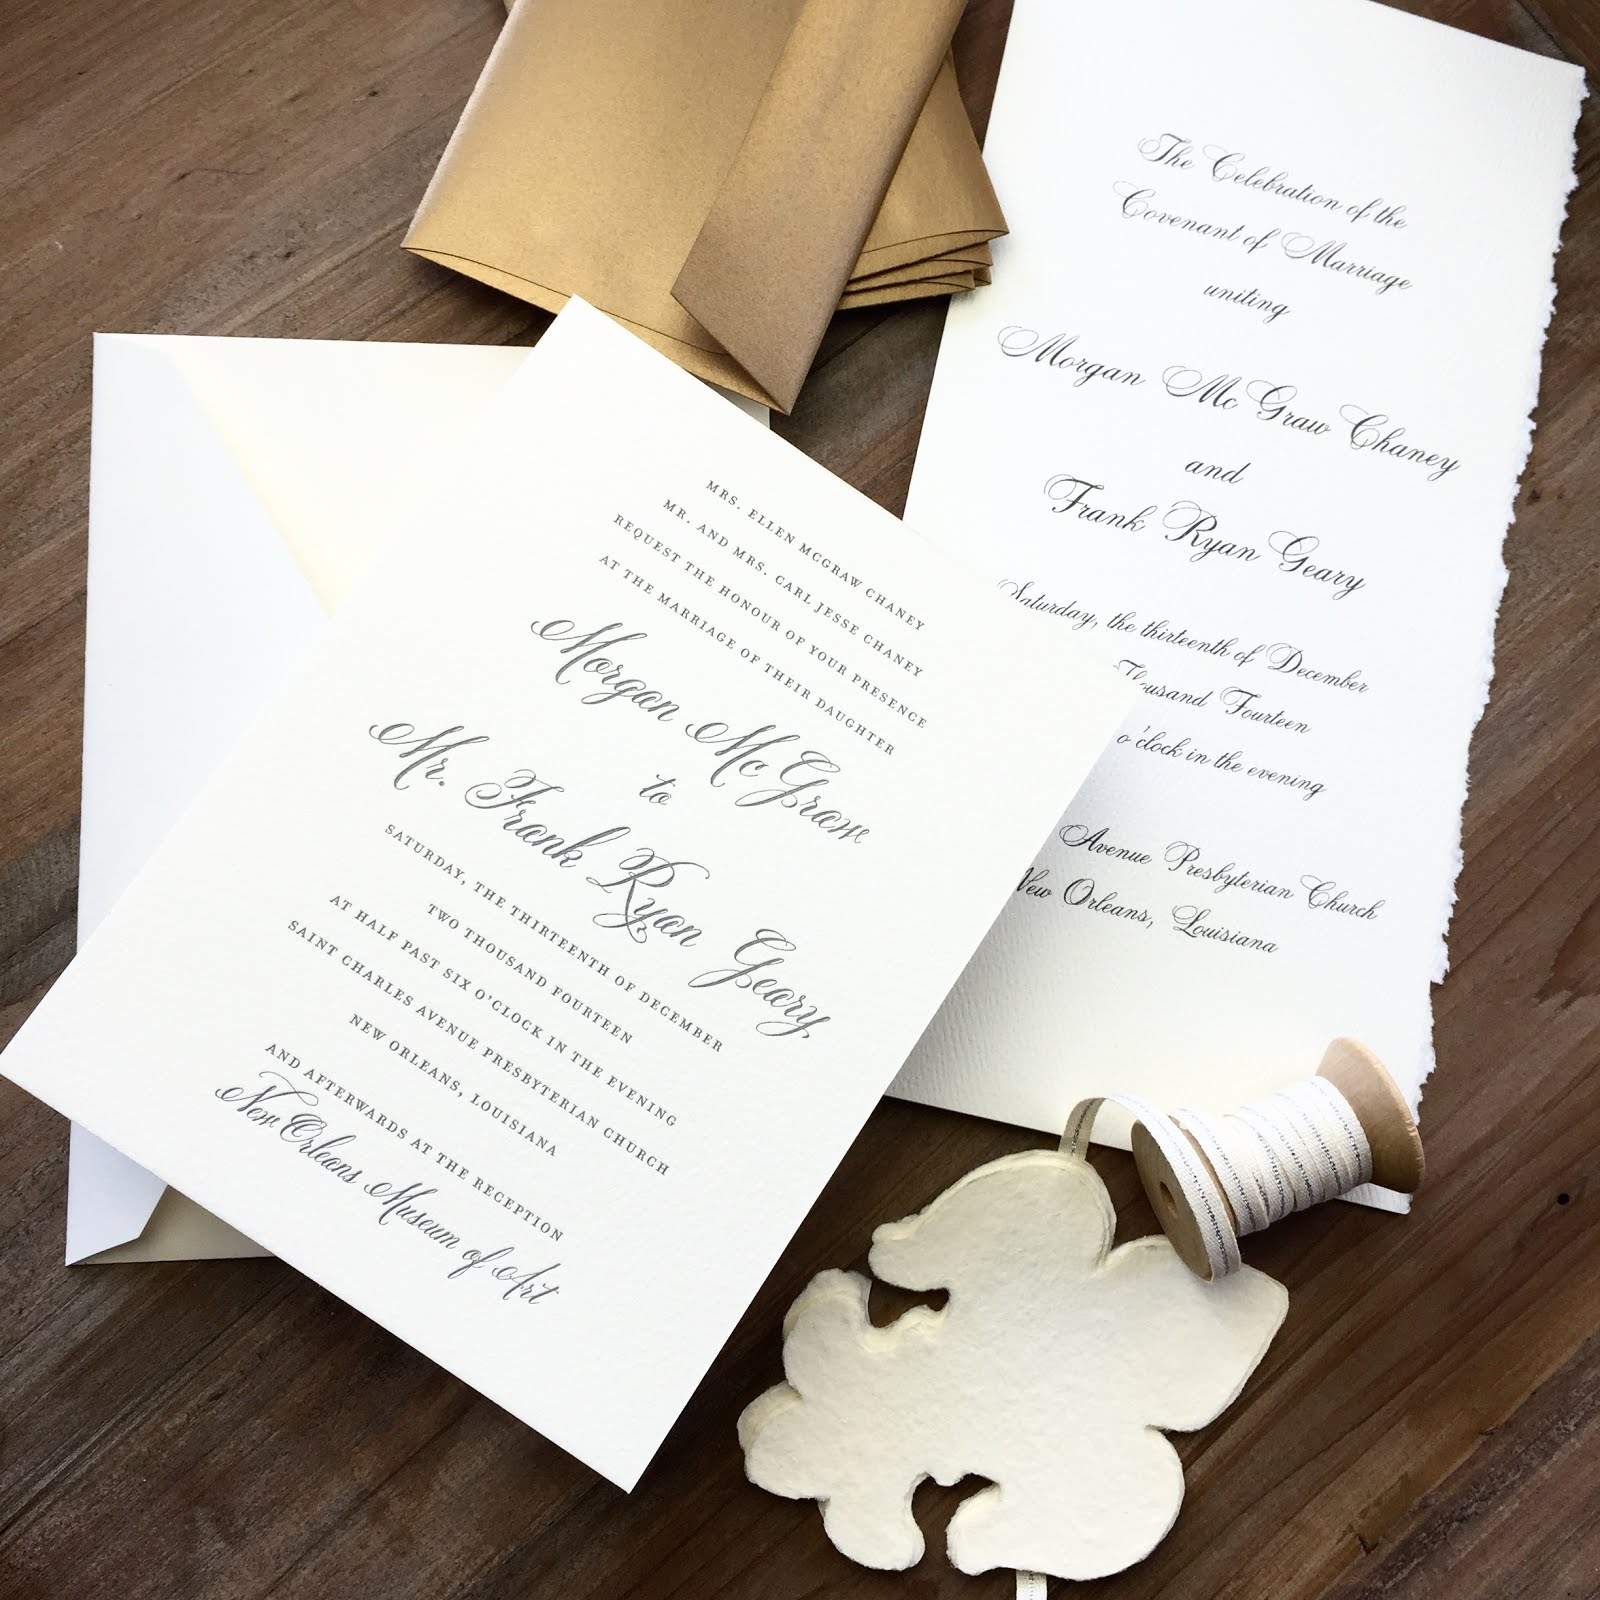 morgan chaney and ryan geary new orleans wedding invitations and wedding program - New Orleans Wedding Invitations